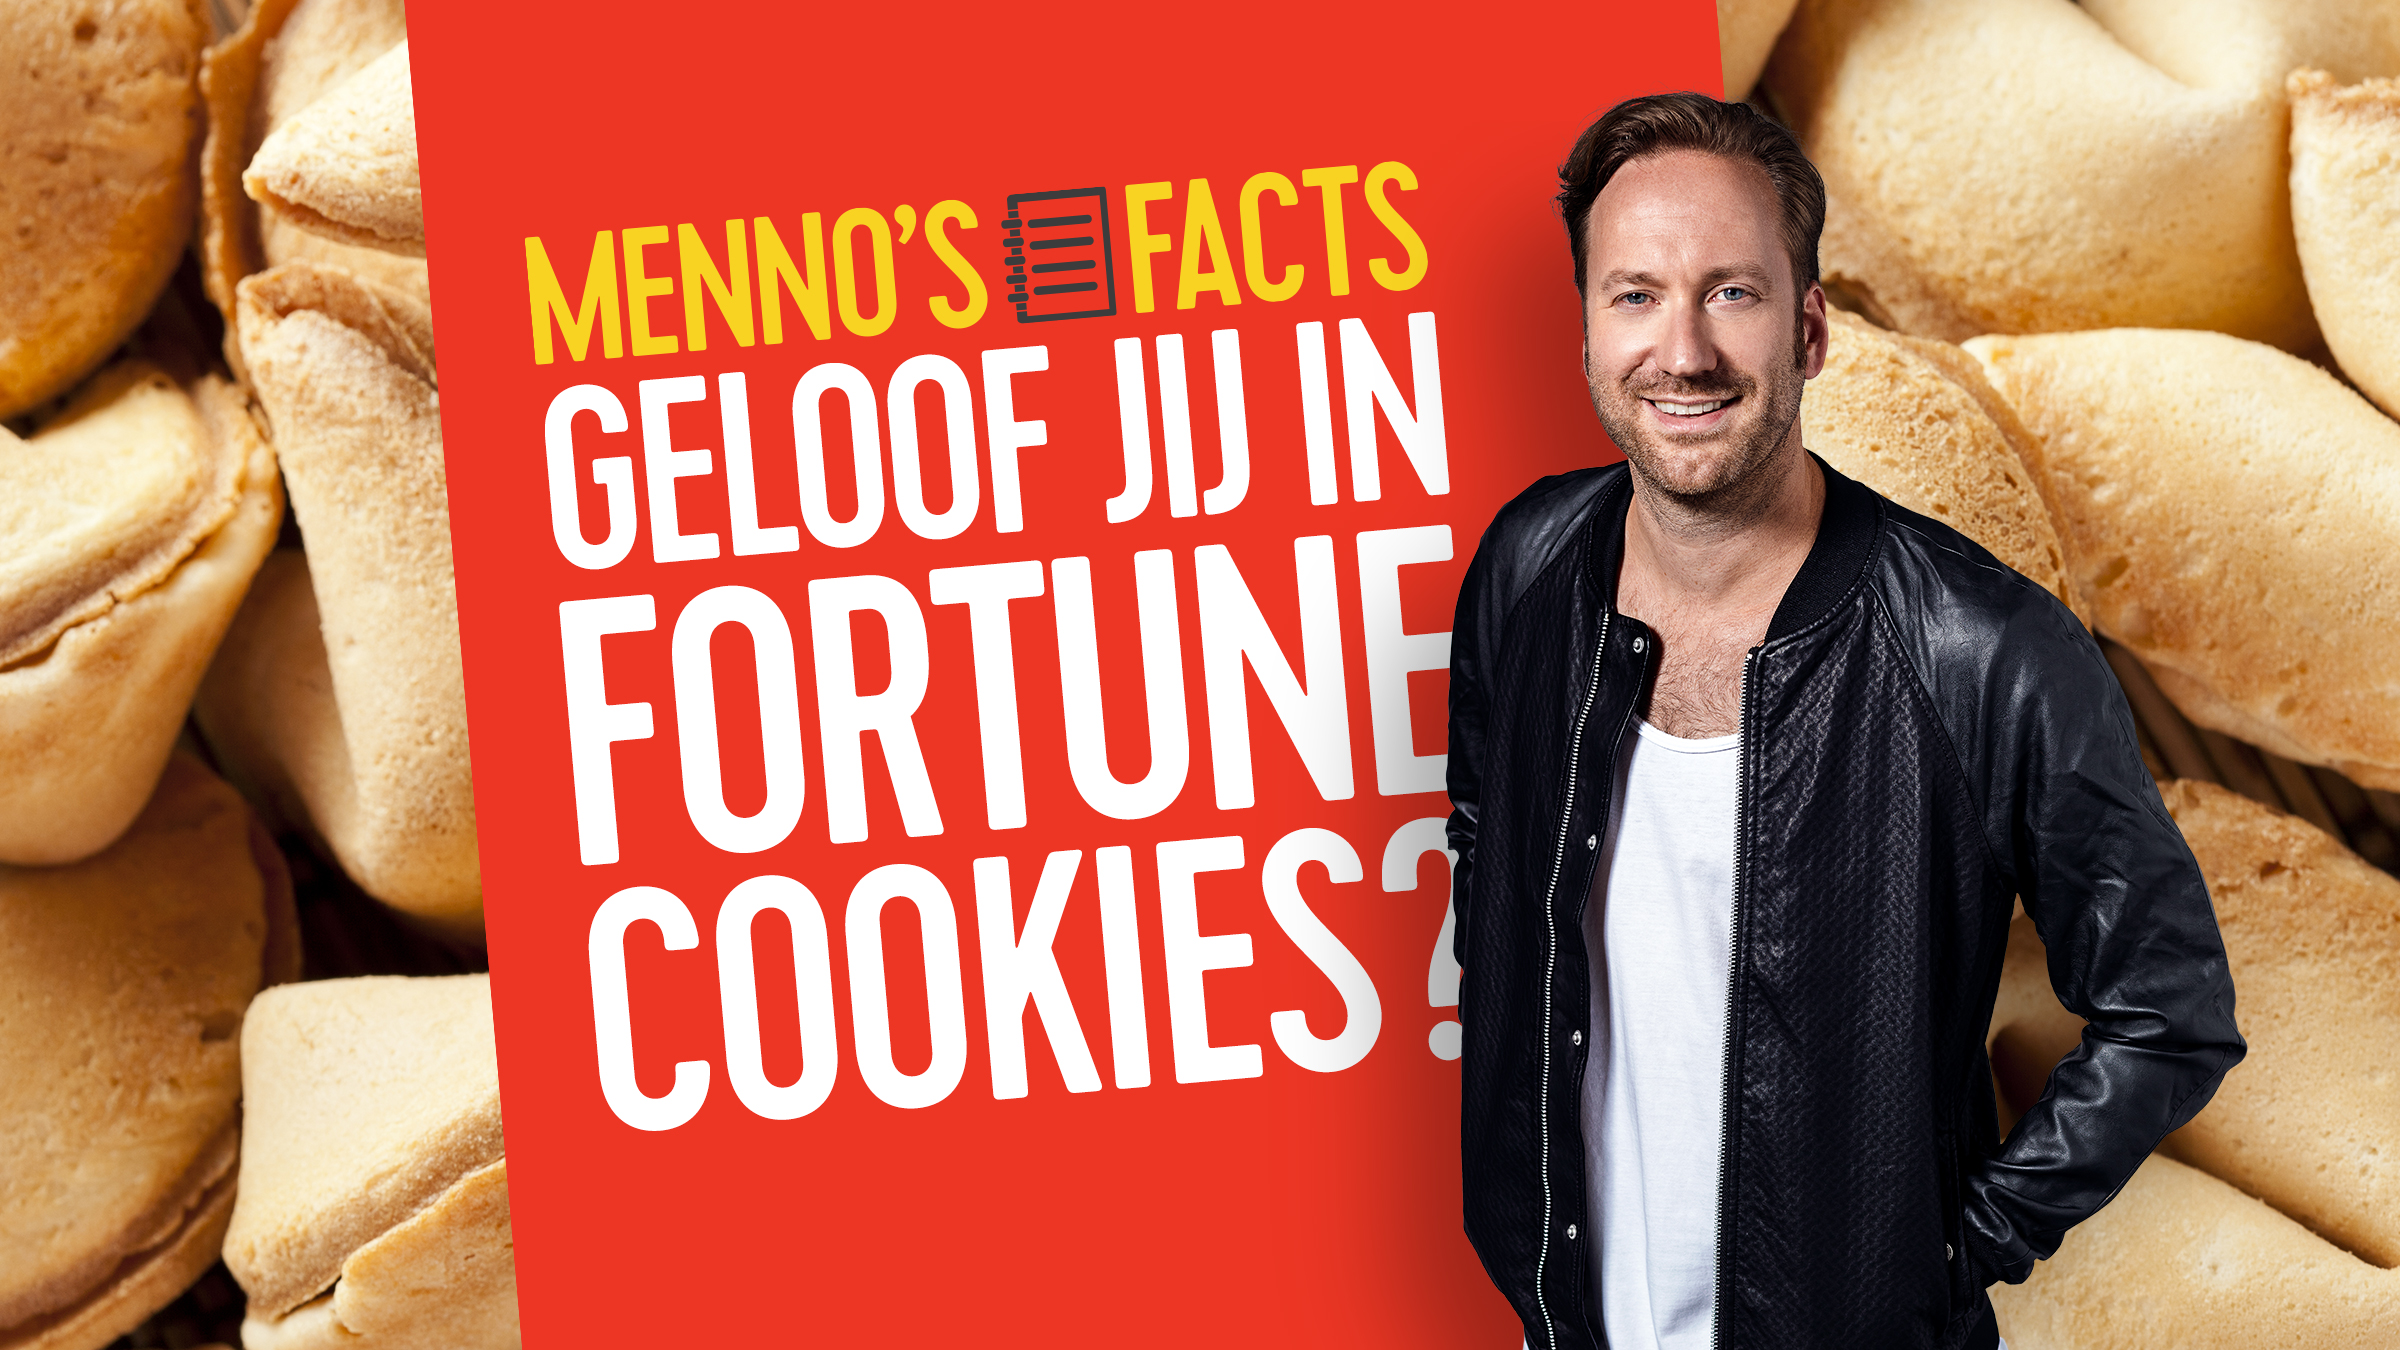 Fortunecookies teaser basis mennosfacts17